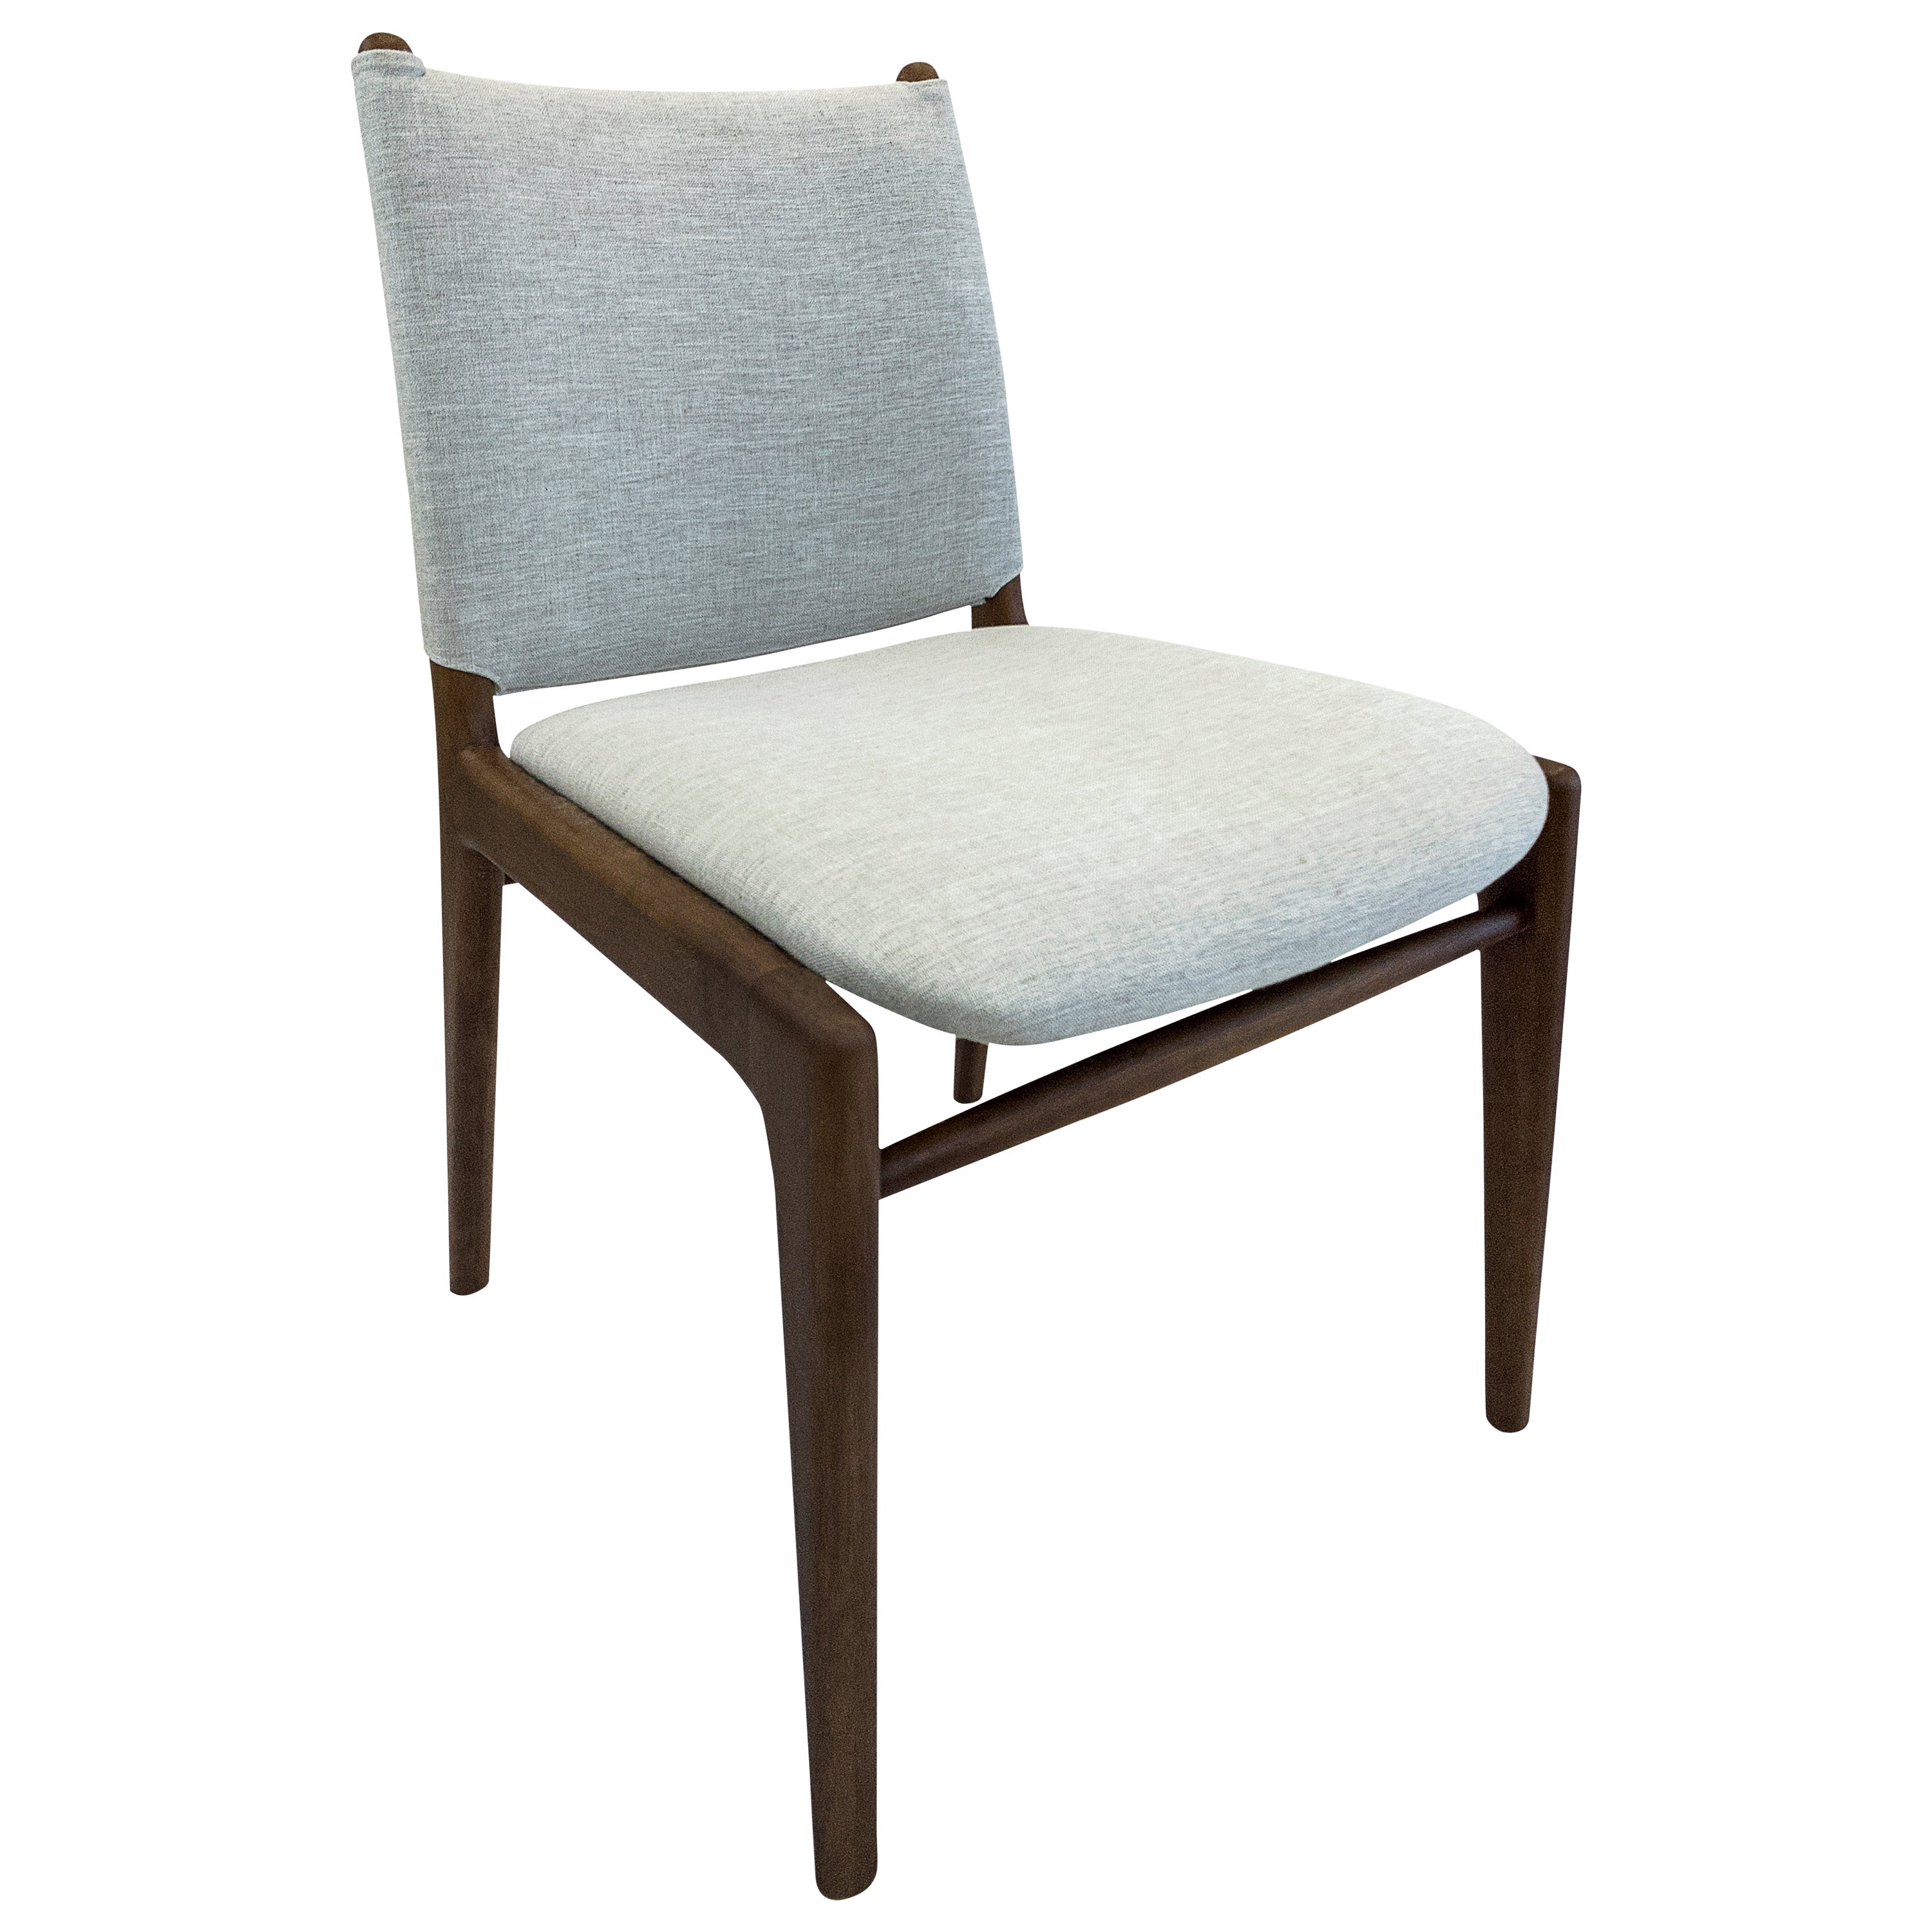 Cappio Dining Chair in Walnut Finish with Light Grey Fabric Seat and Seat Back